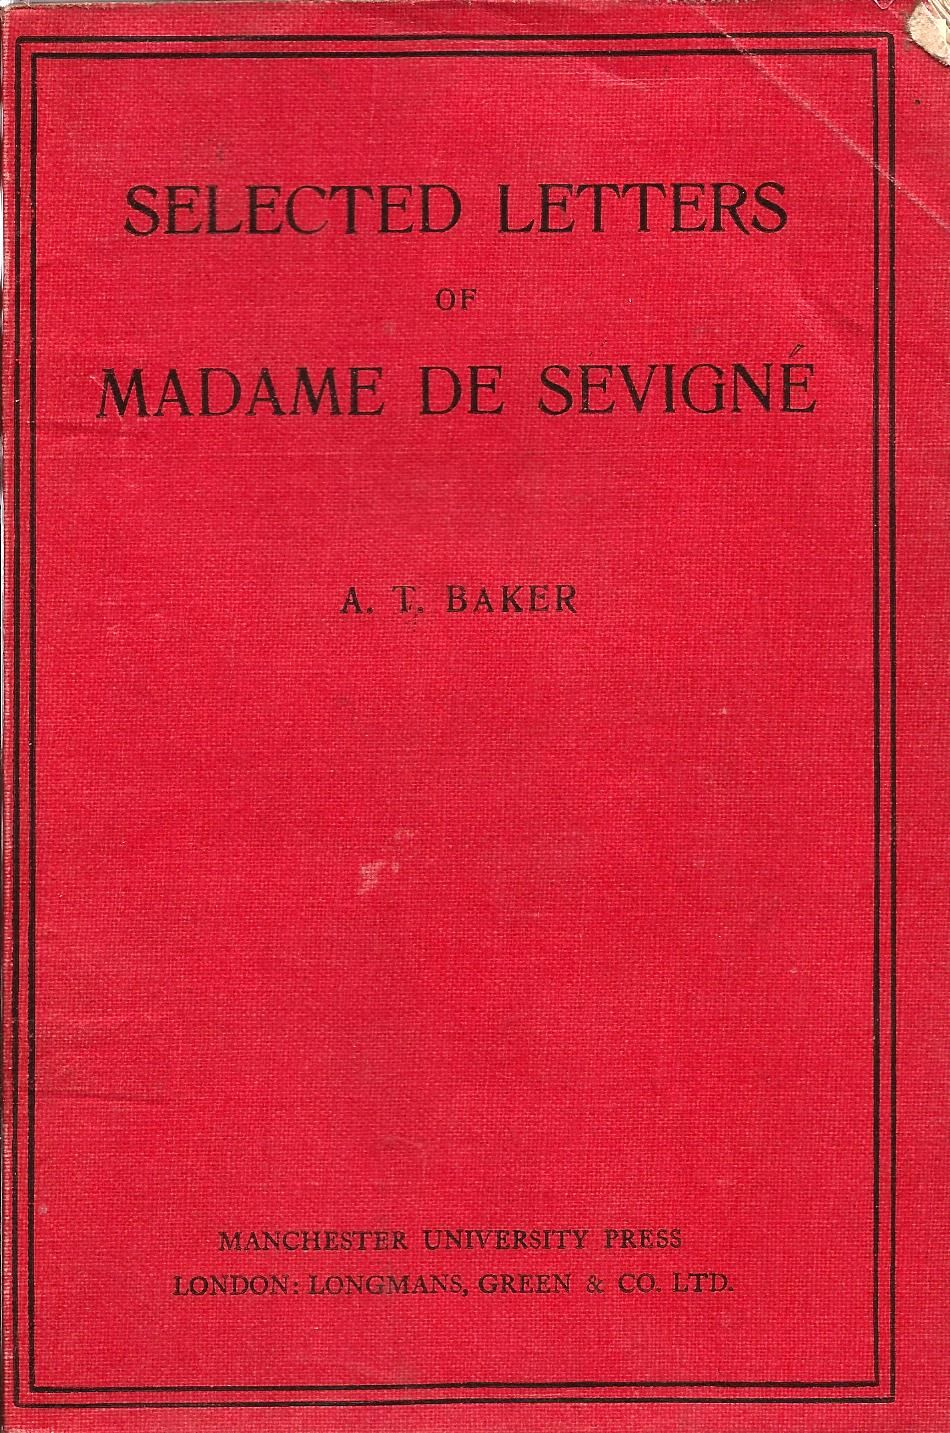 vintage book selected letters of Madame De Sevigne 1925